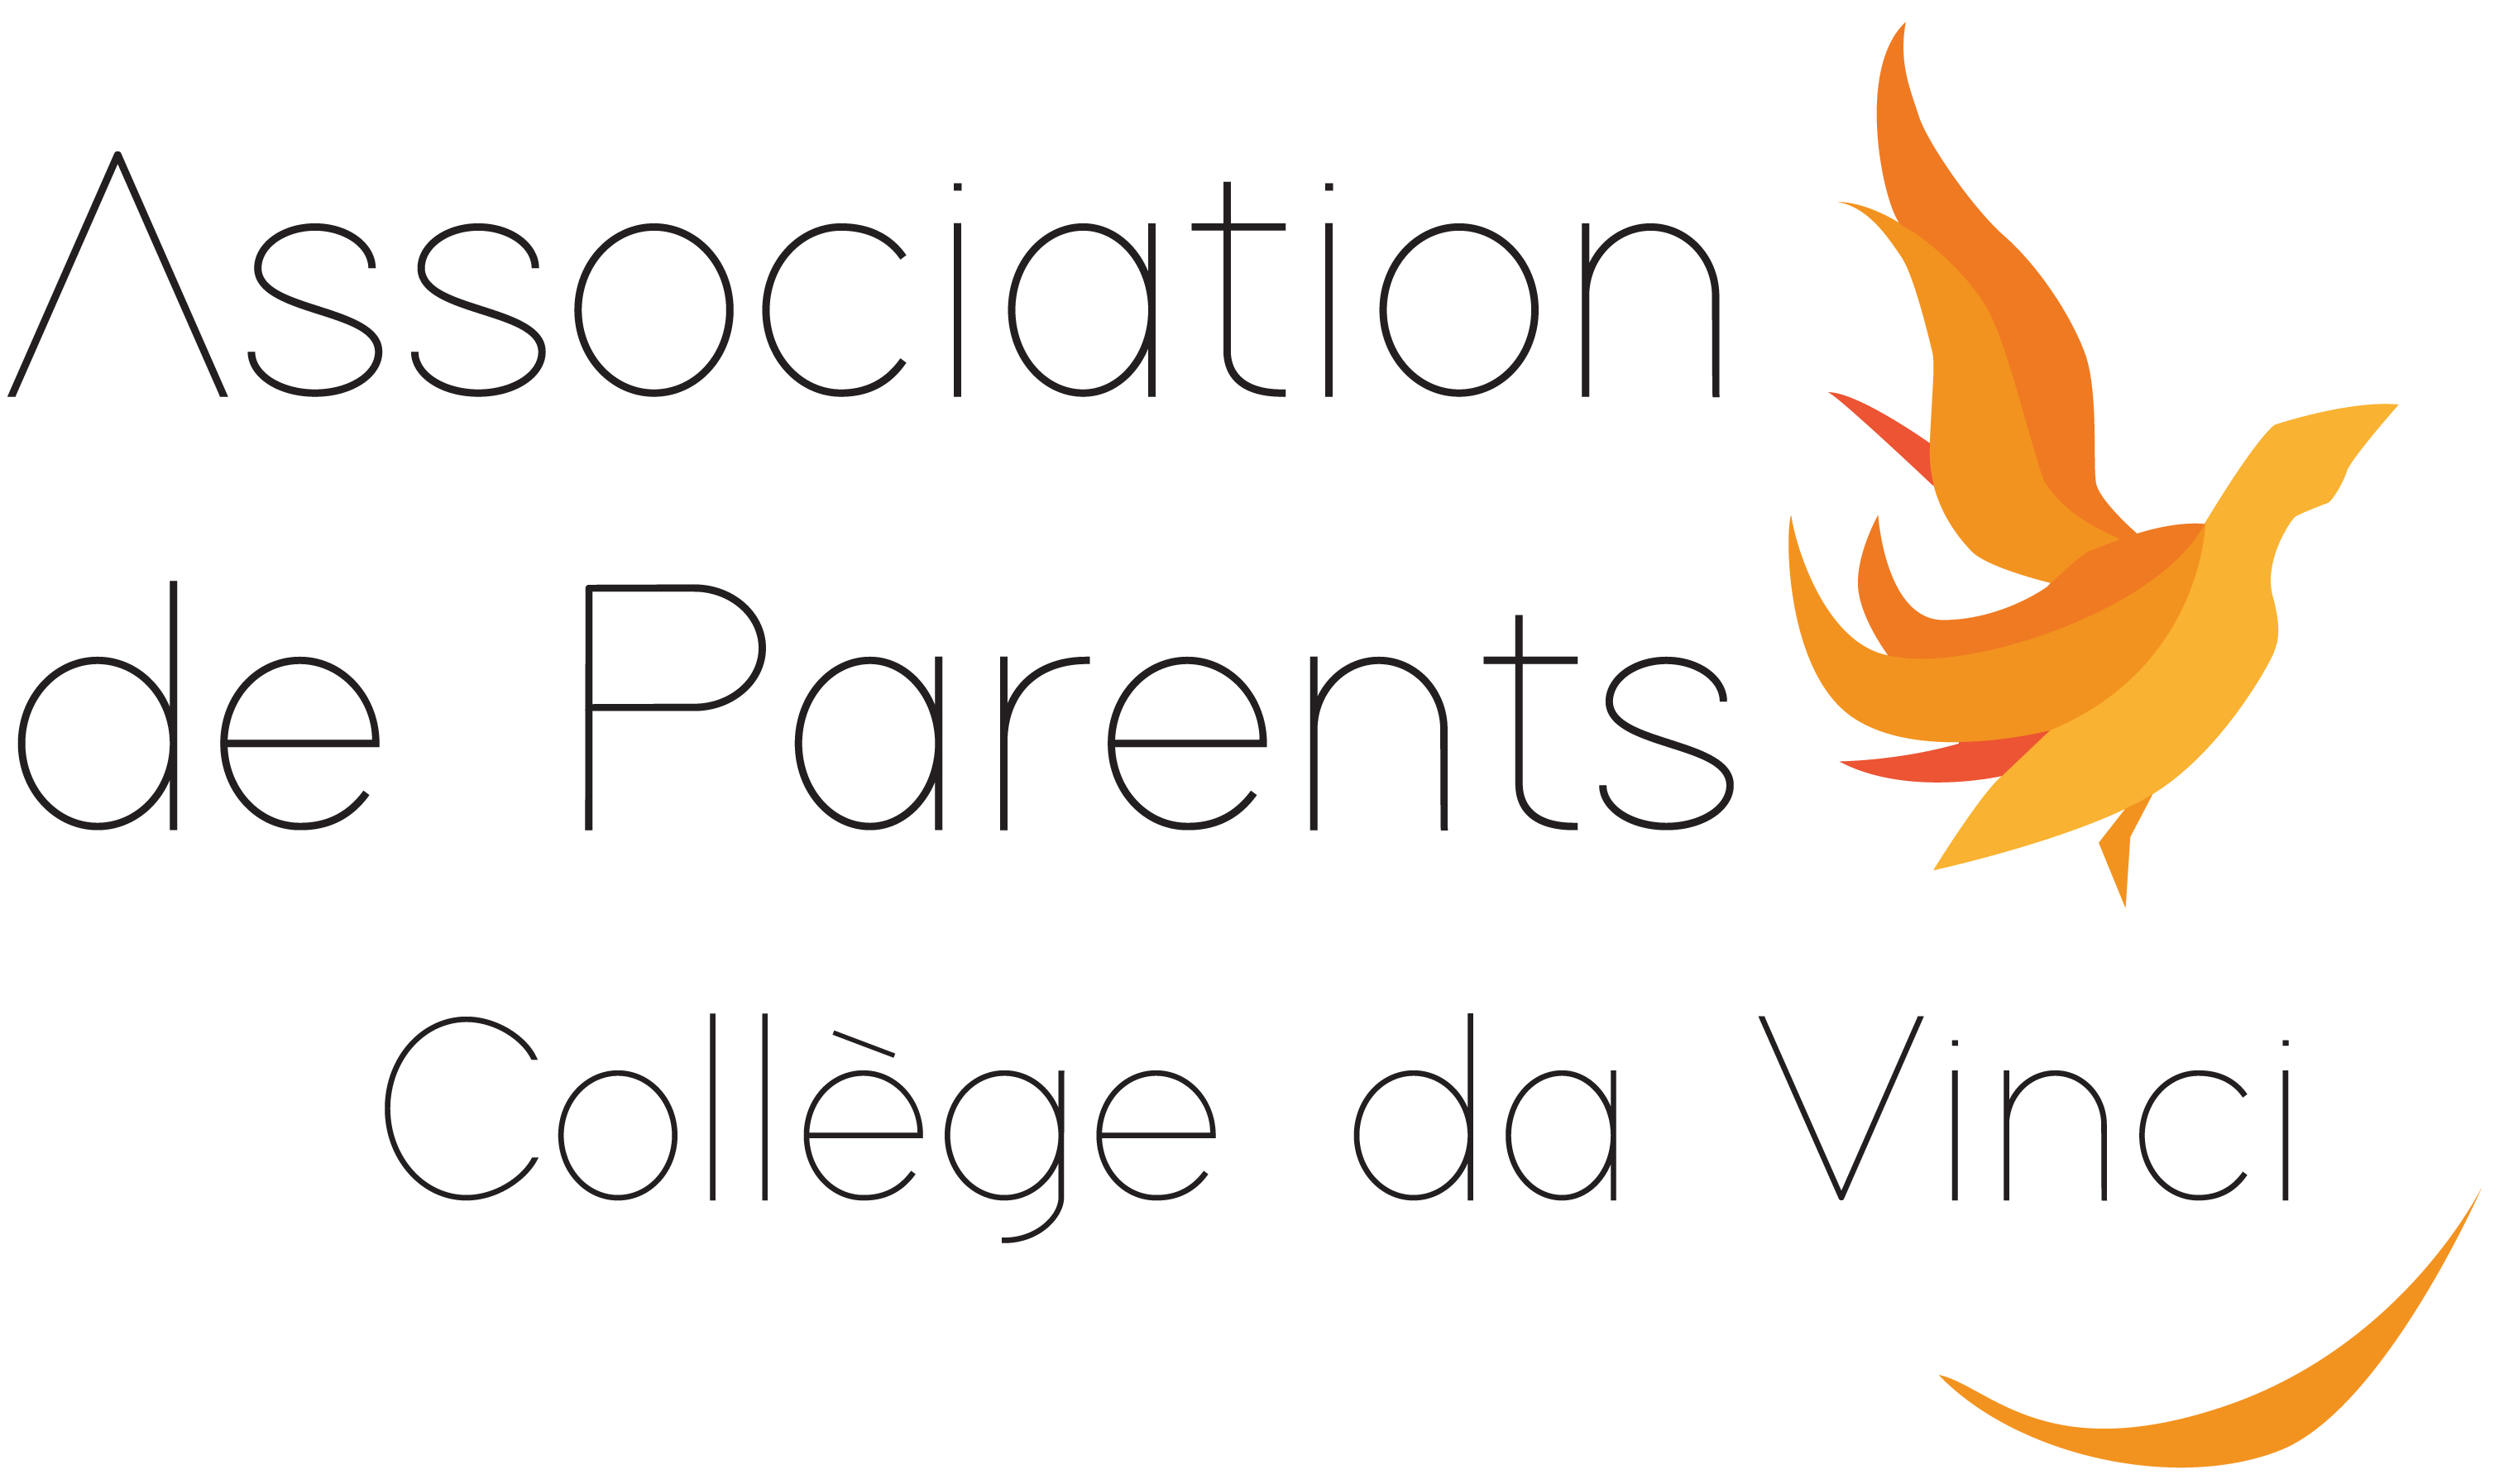 Association de parents - Collège DaVinci